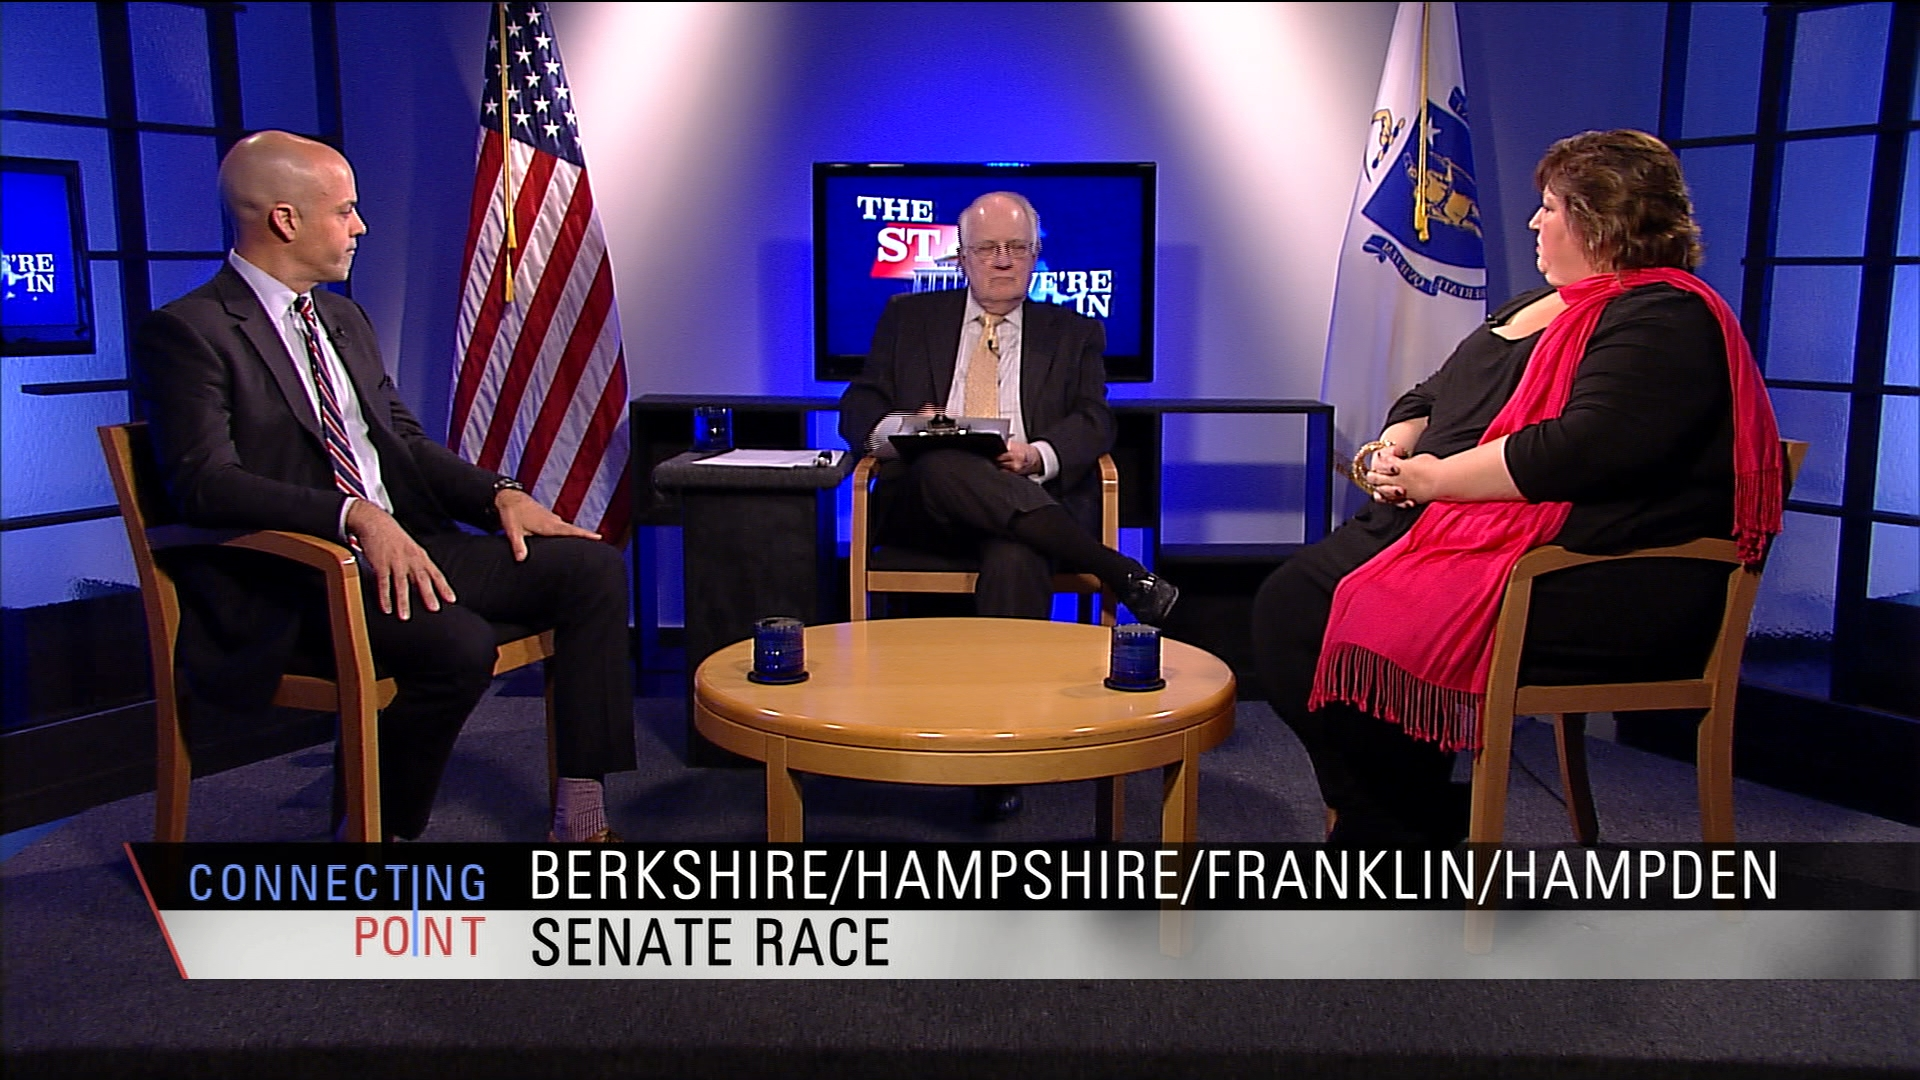 Candidates Christine Canning (R—Lanesborough) and Adam Hinds (D—Pittsfield) debate key issues in their Berkshire State Senate District race.